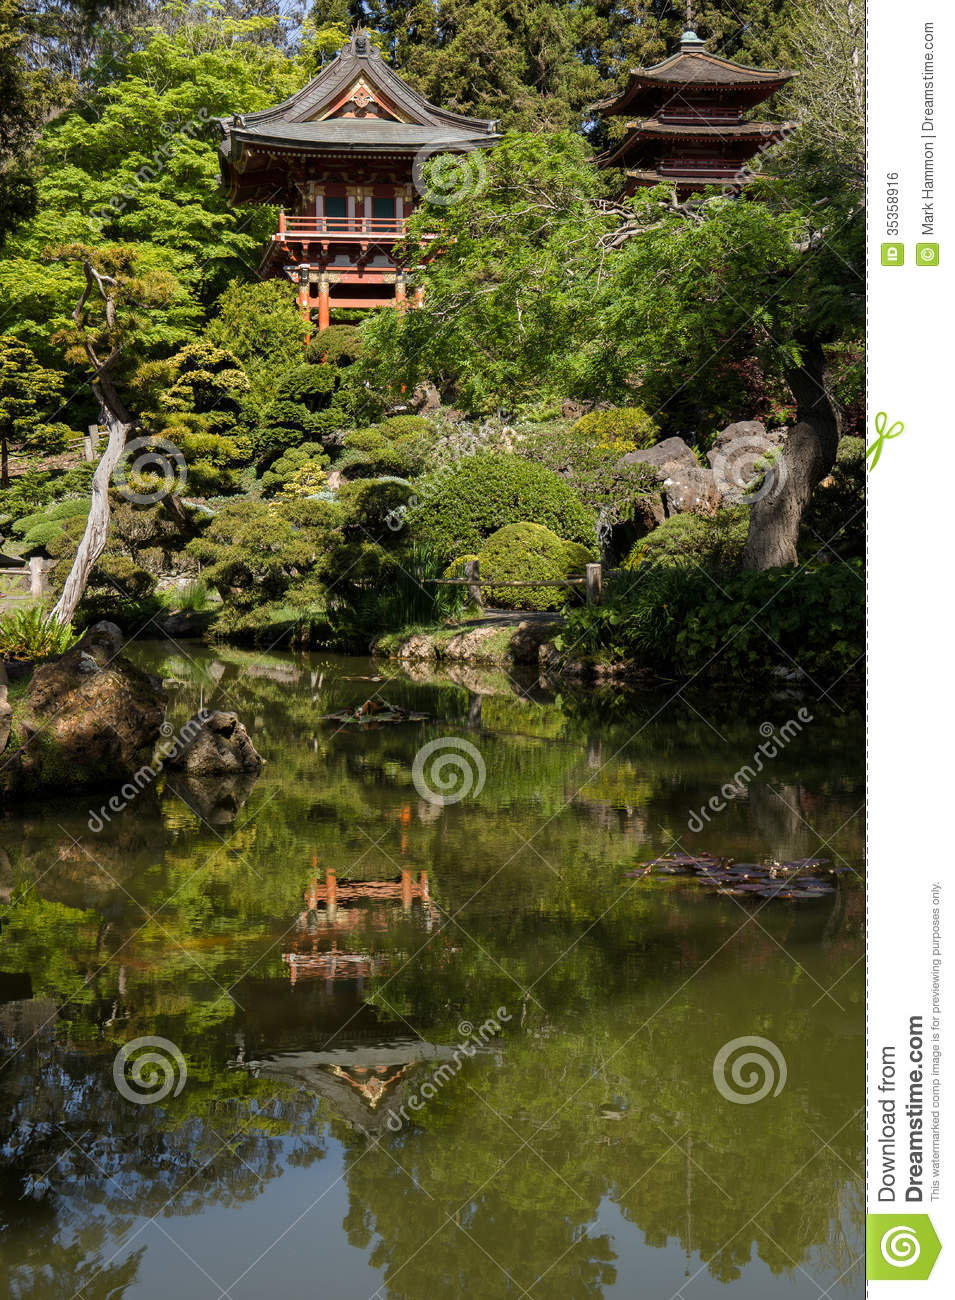 Japanese tea house with bonsai gardens stock photo image for Japanese garden plants and trees